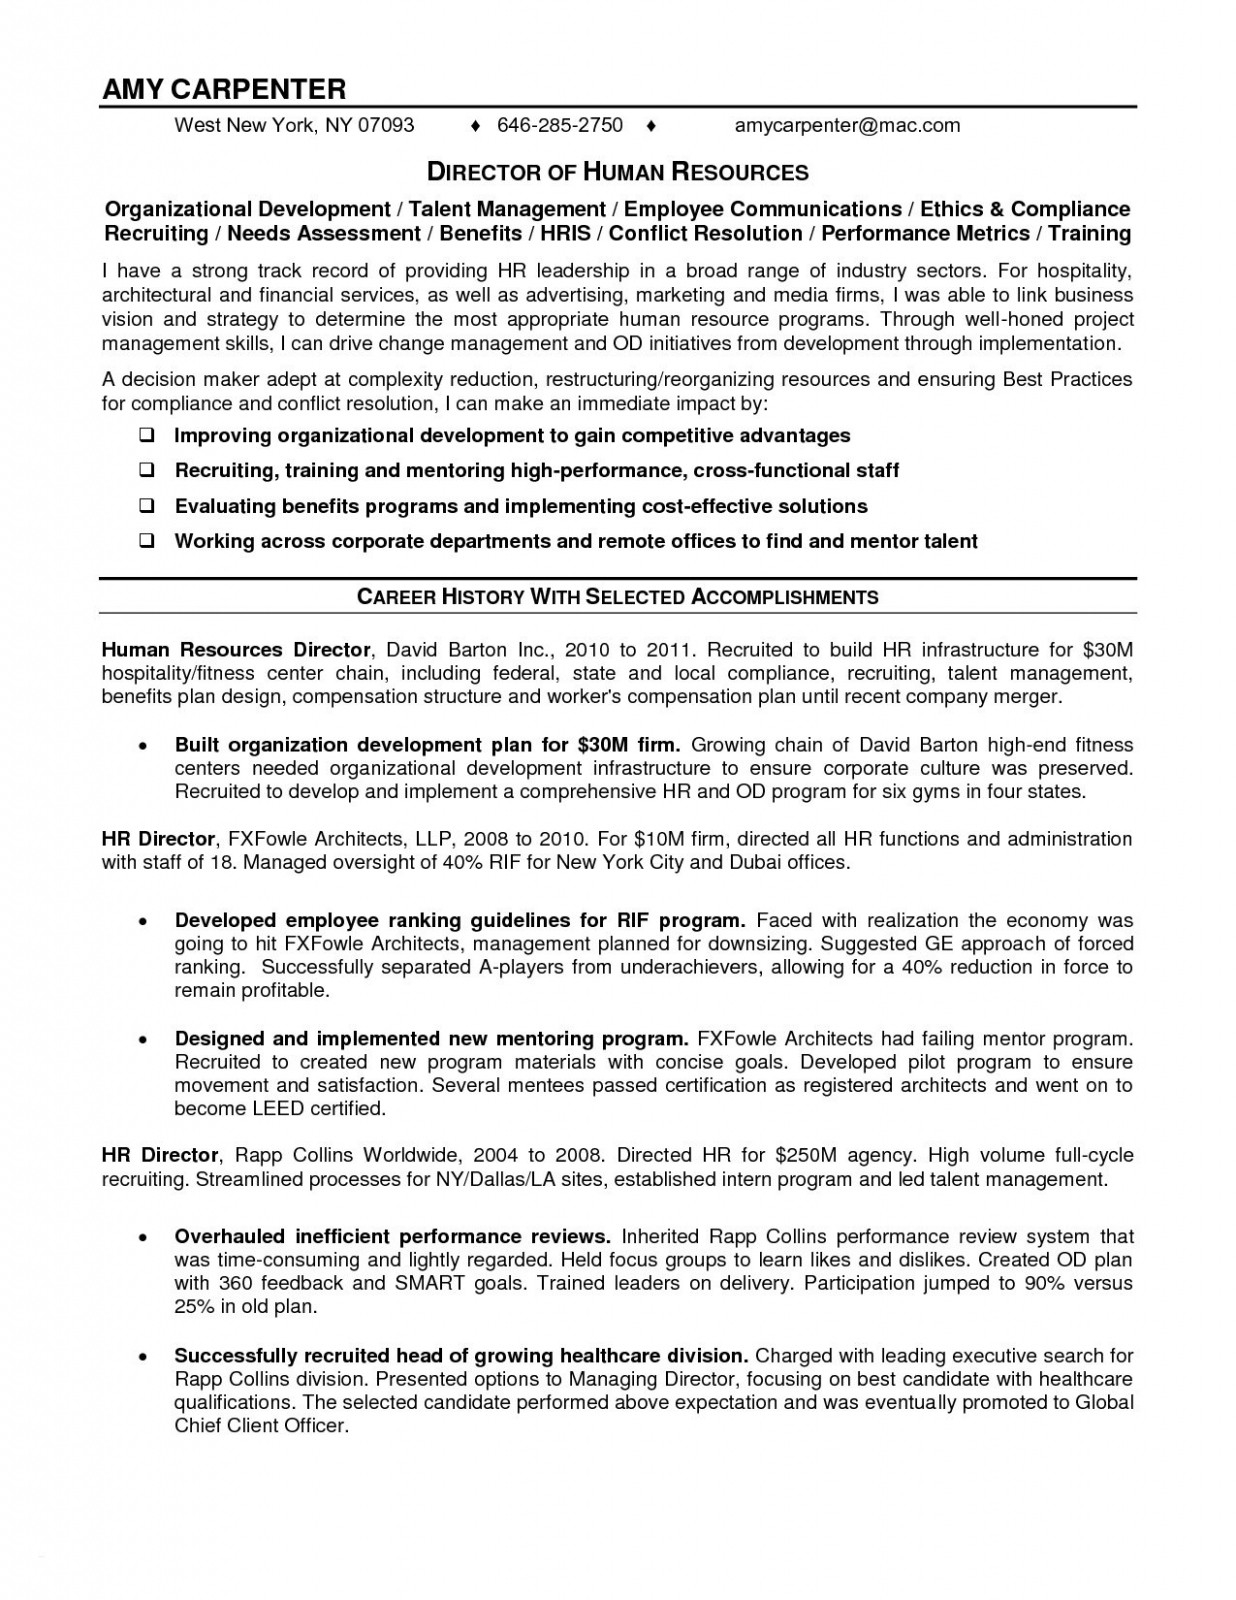 jsom resume template example-Resume Template For Admin Refrence Jsom Resume Template — Resumes Project 10-g